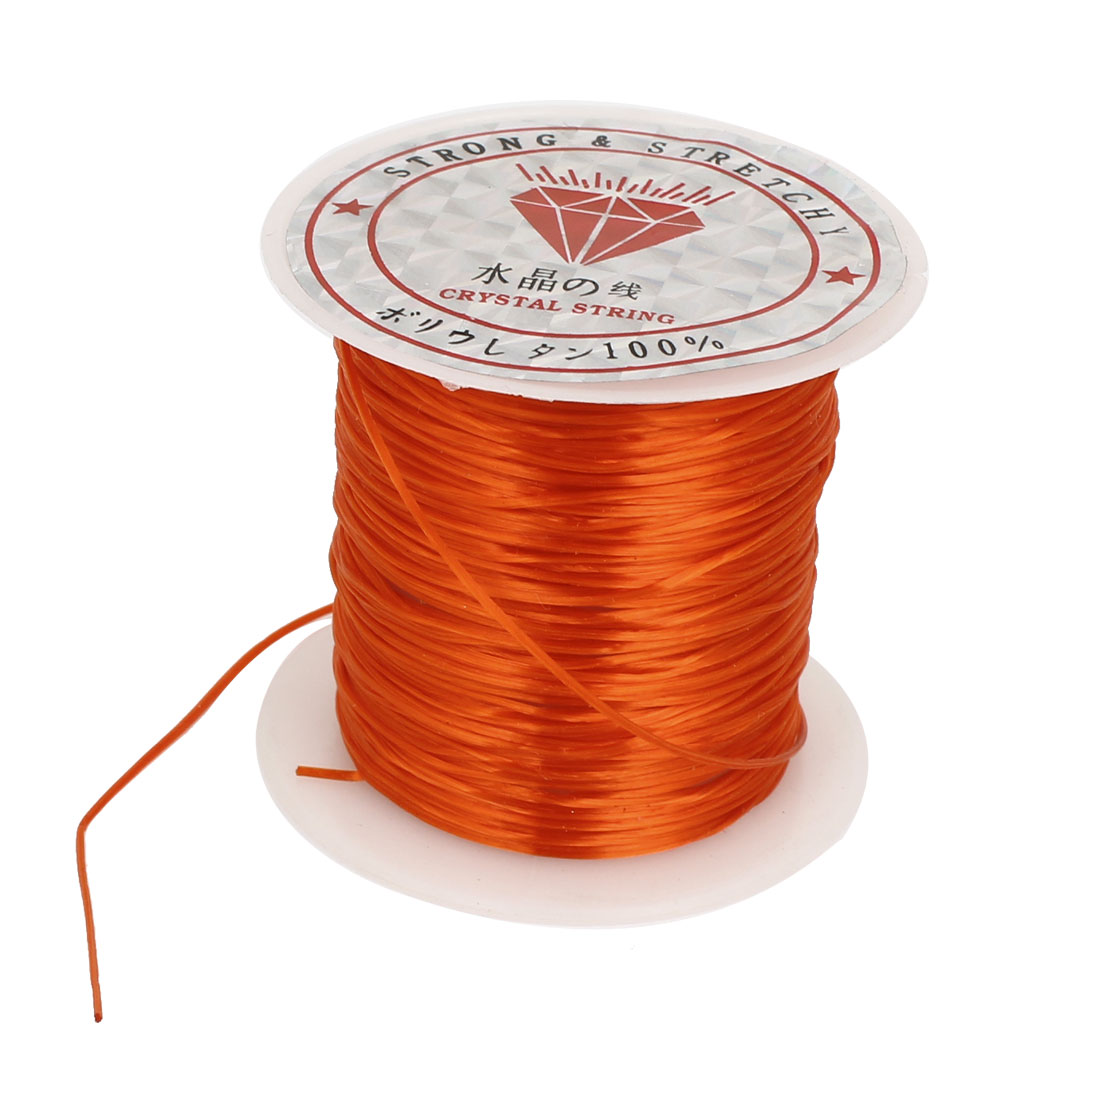 1mm Burnt Orange Elastic Stretch Beading String Thread Cord Wire for Jewelry Making